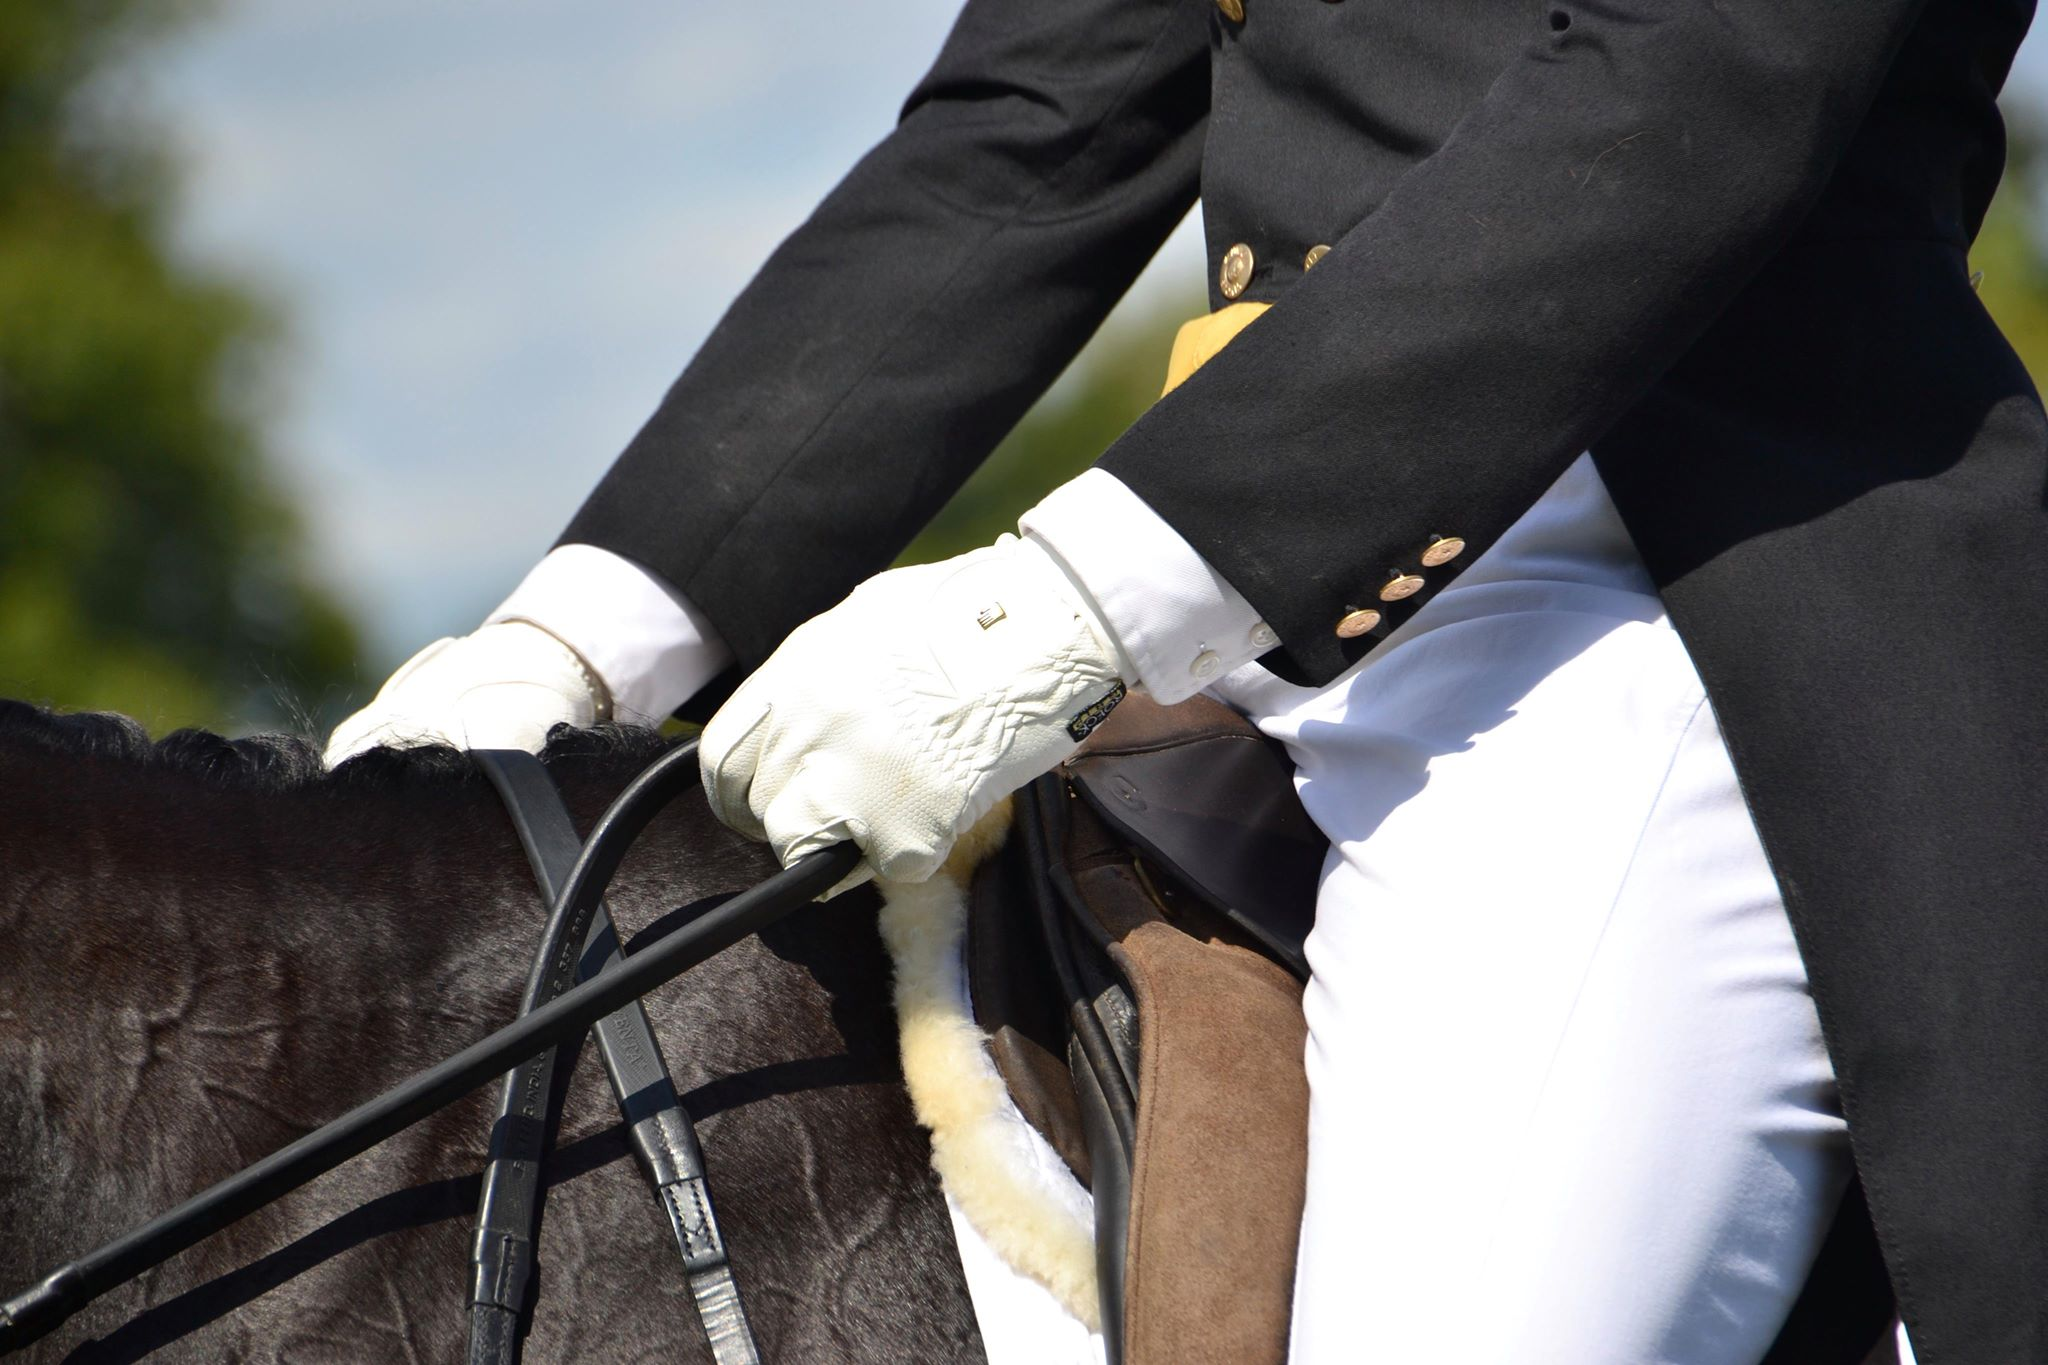 Friday's Round for Burghley Horse Trials 2018 – Dressage phase is completed